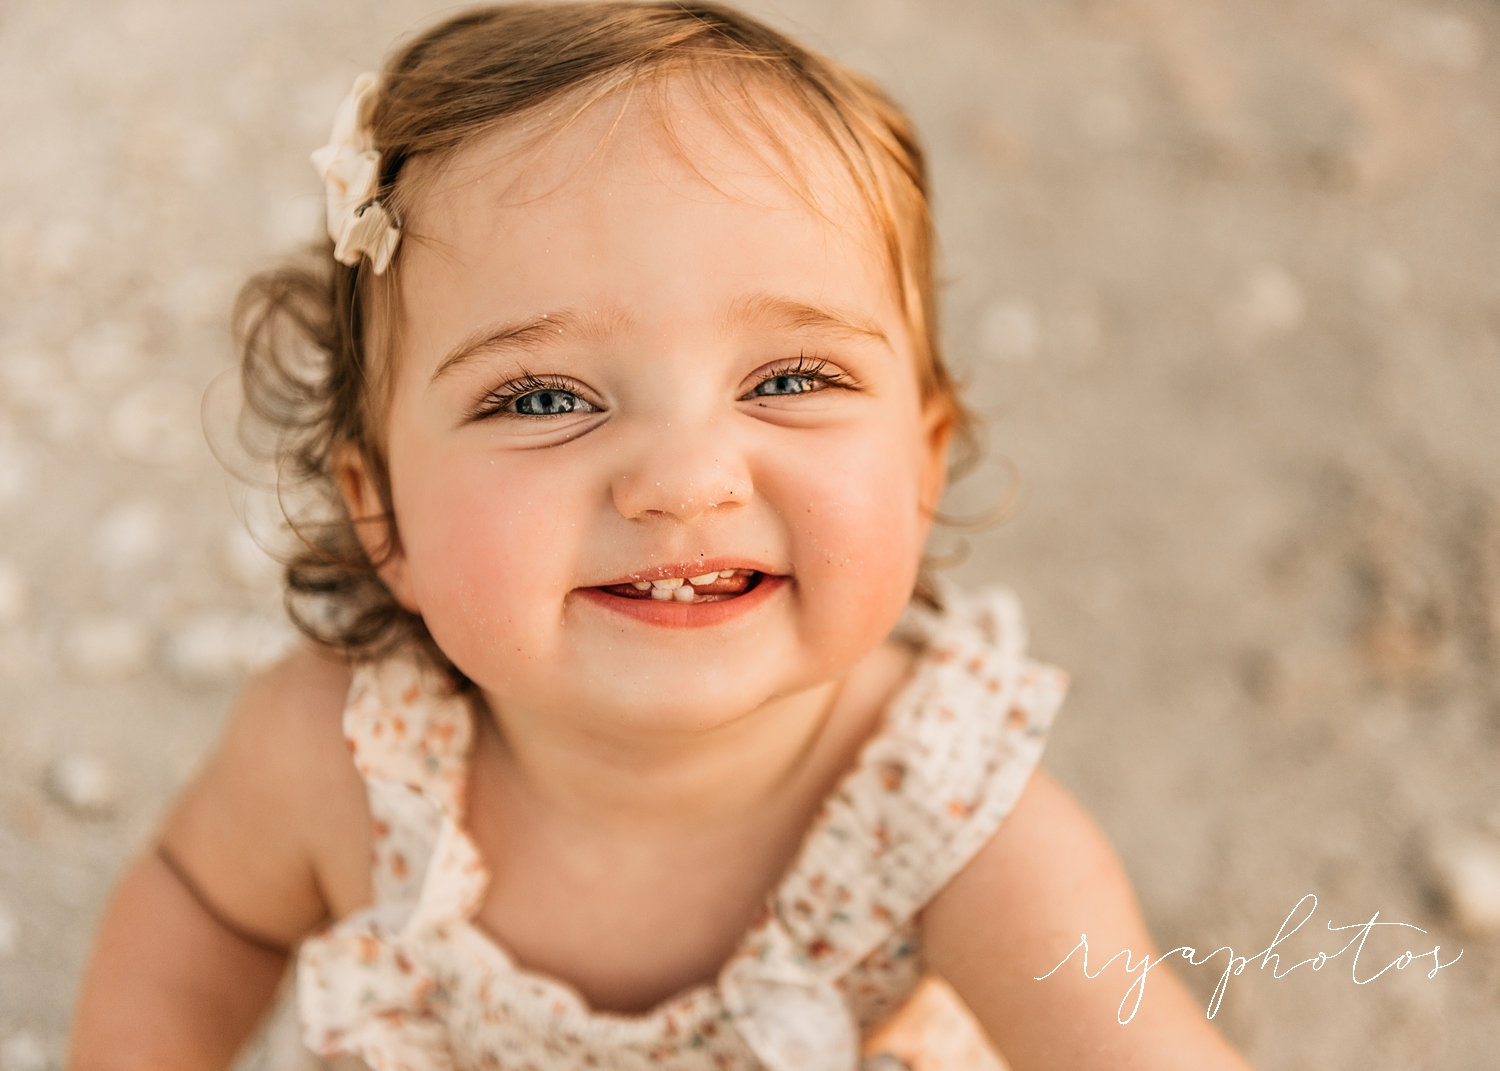 beautiful baby girl with curly hair and blue eyes, smiling baby girl, Ryaphotos